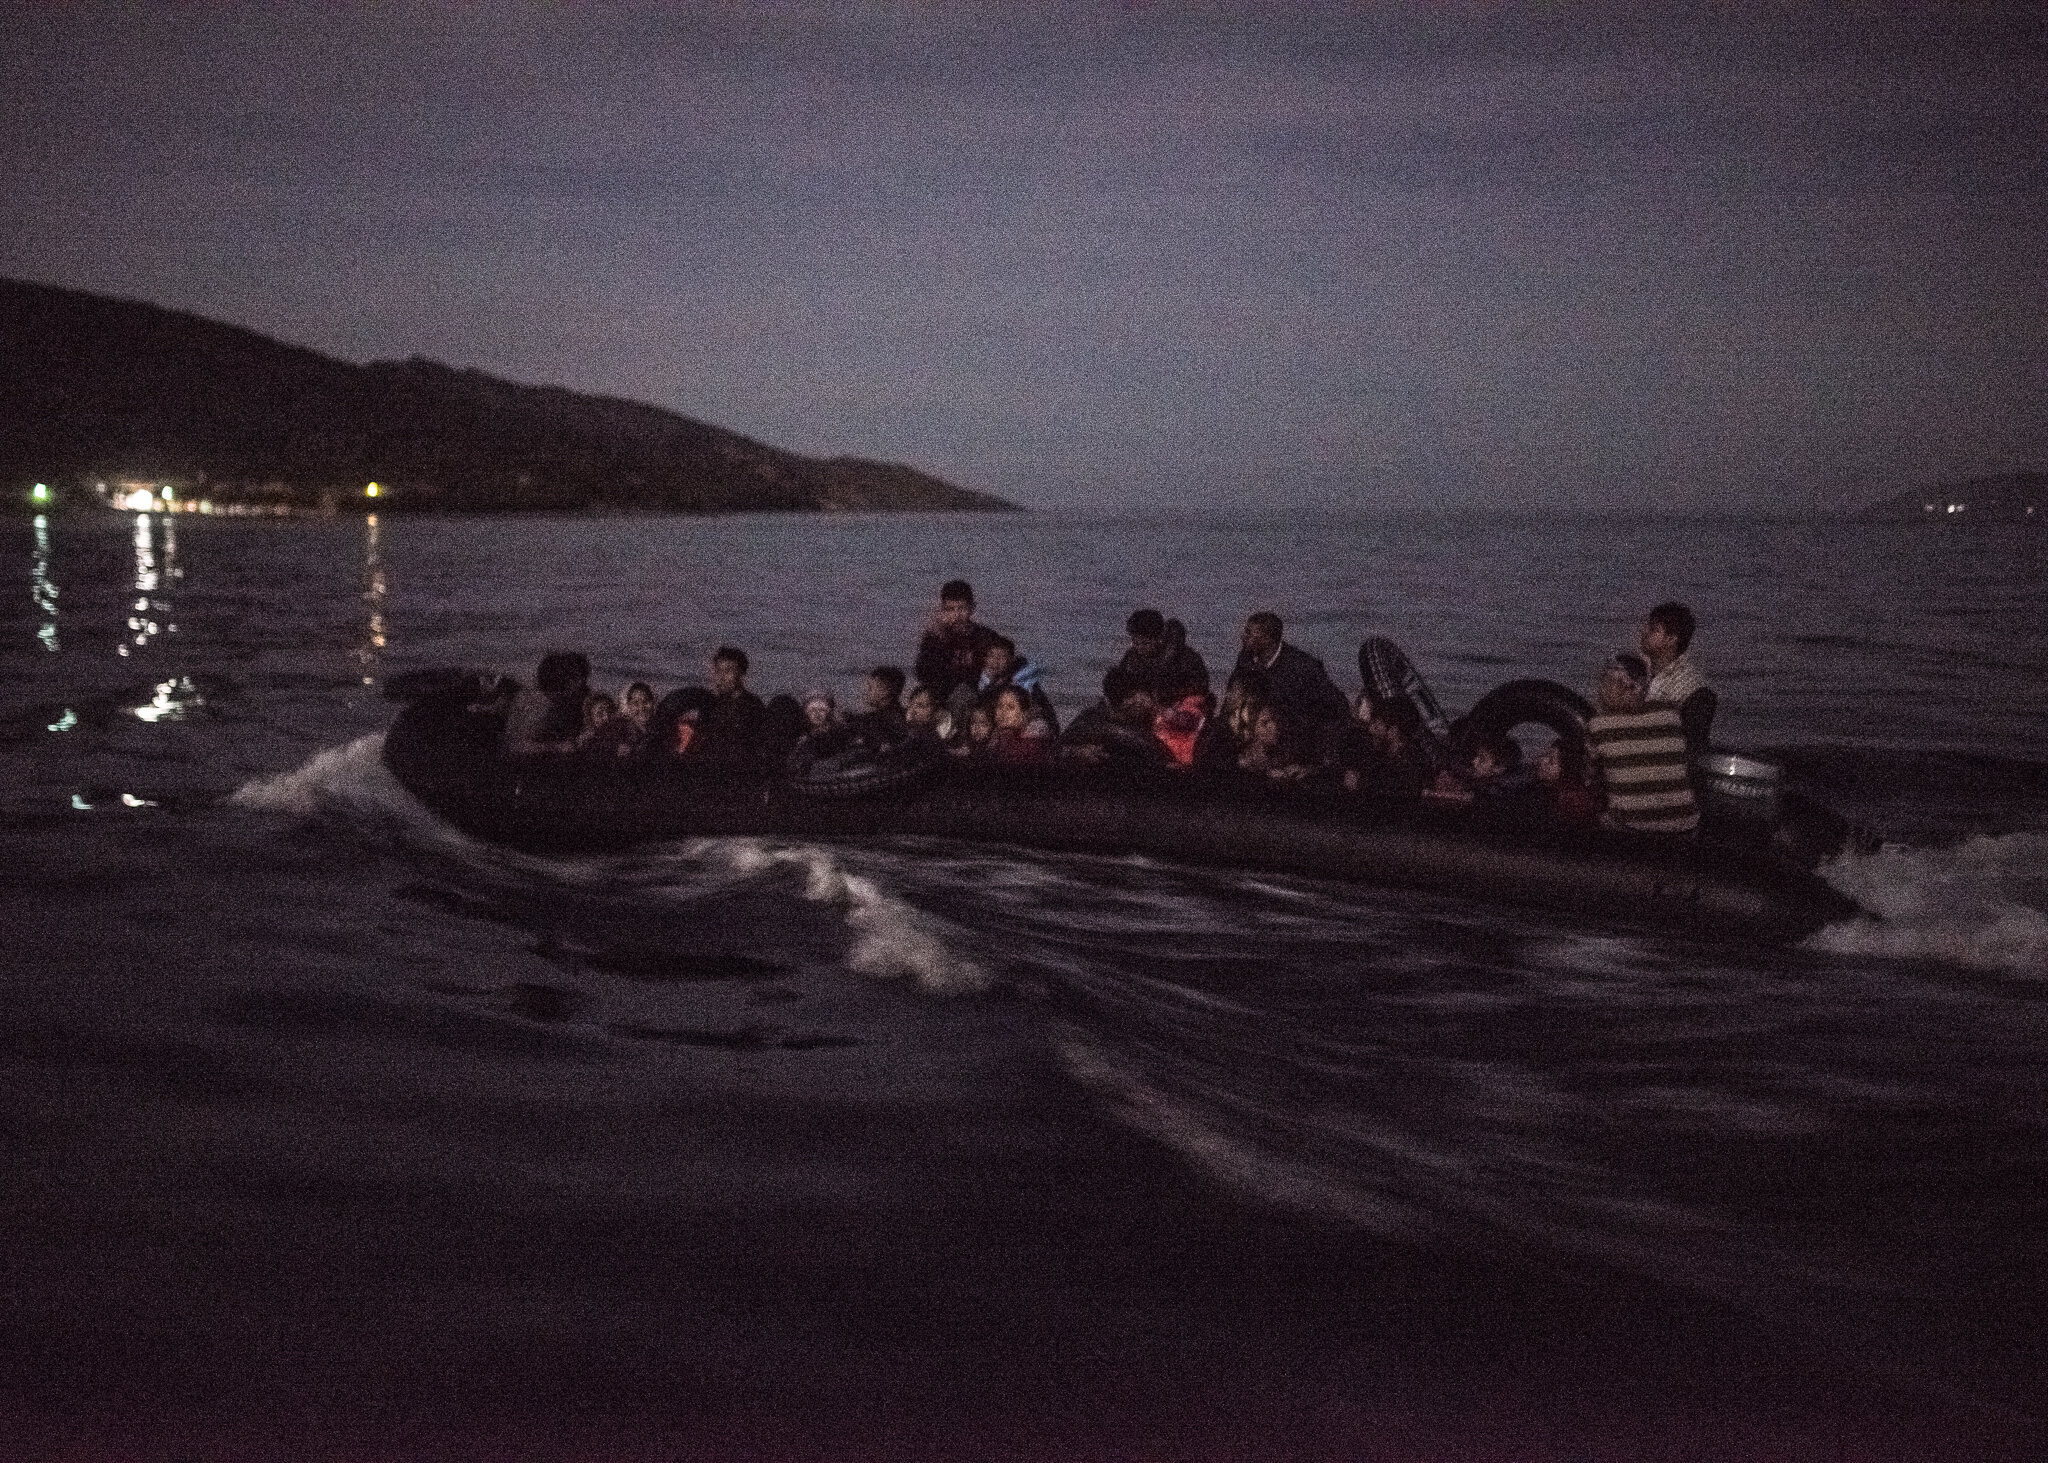 RefugeeRescue_011019-14.jpg